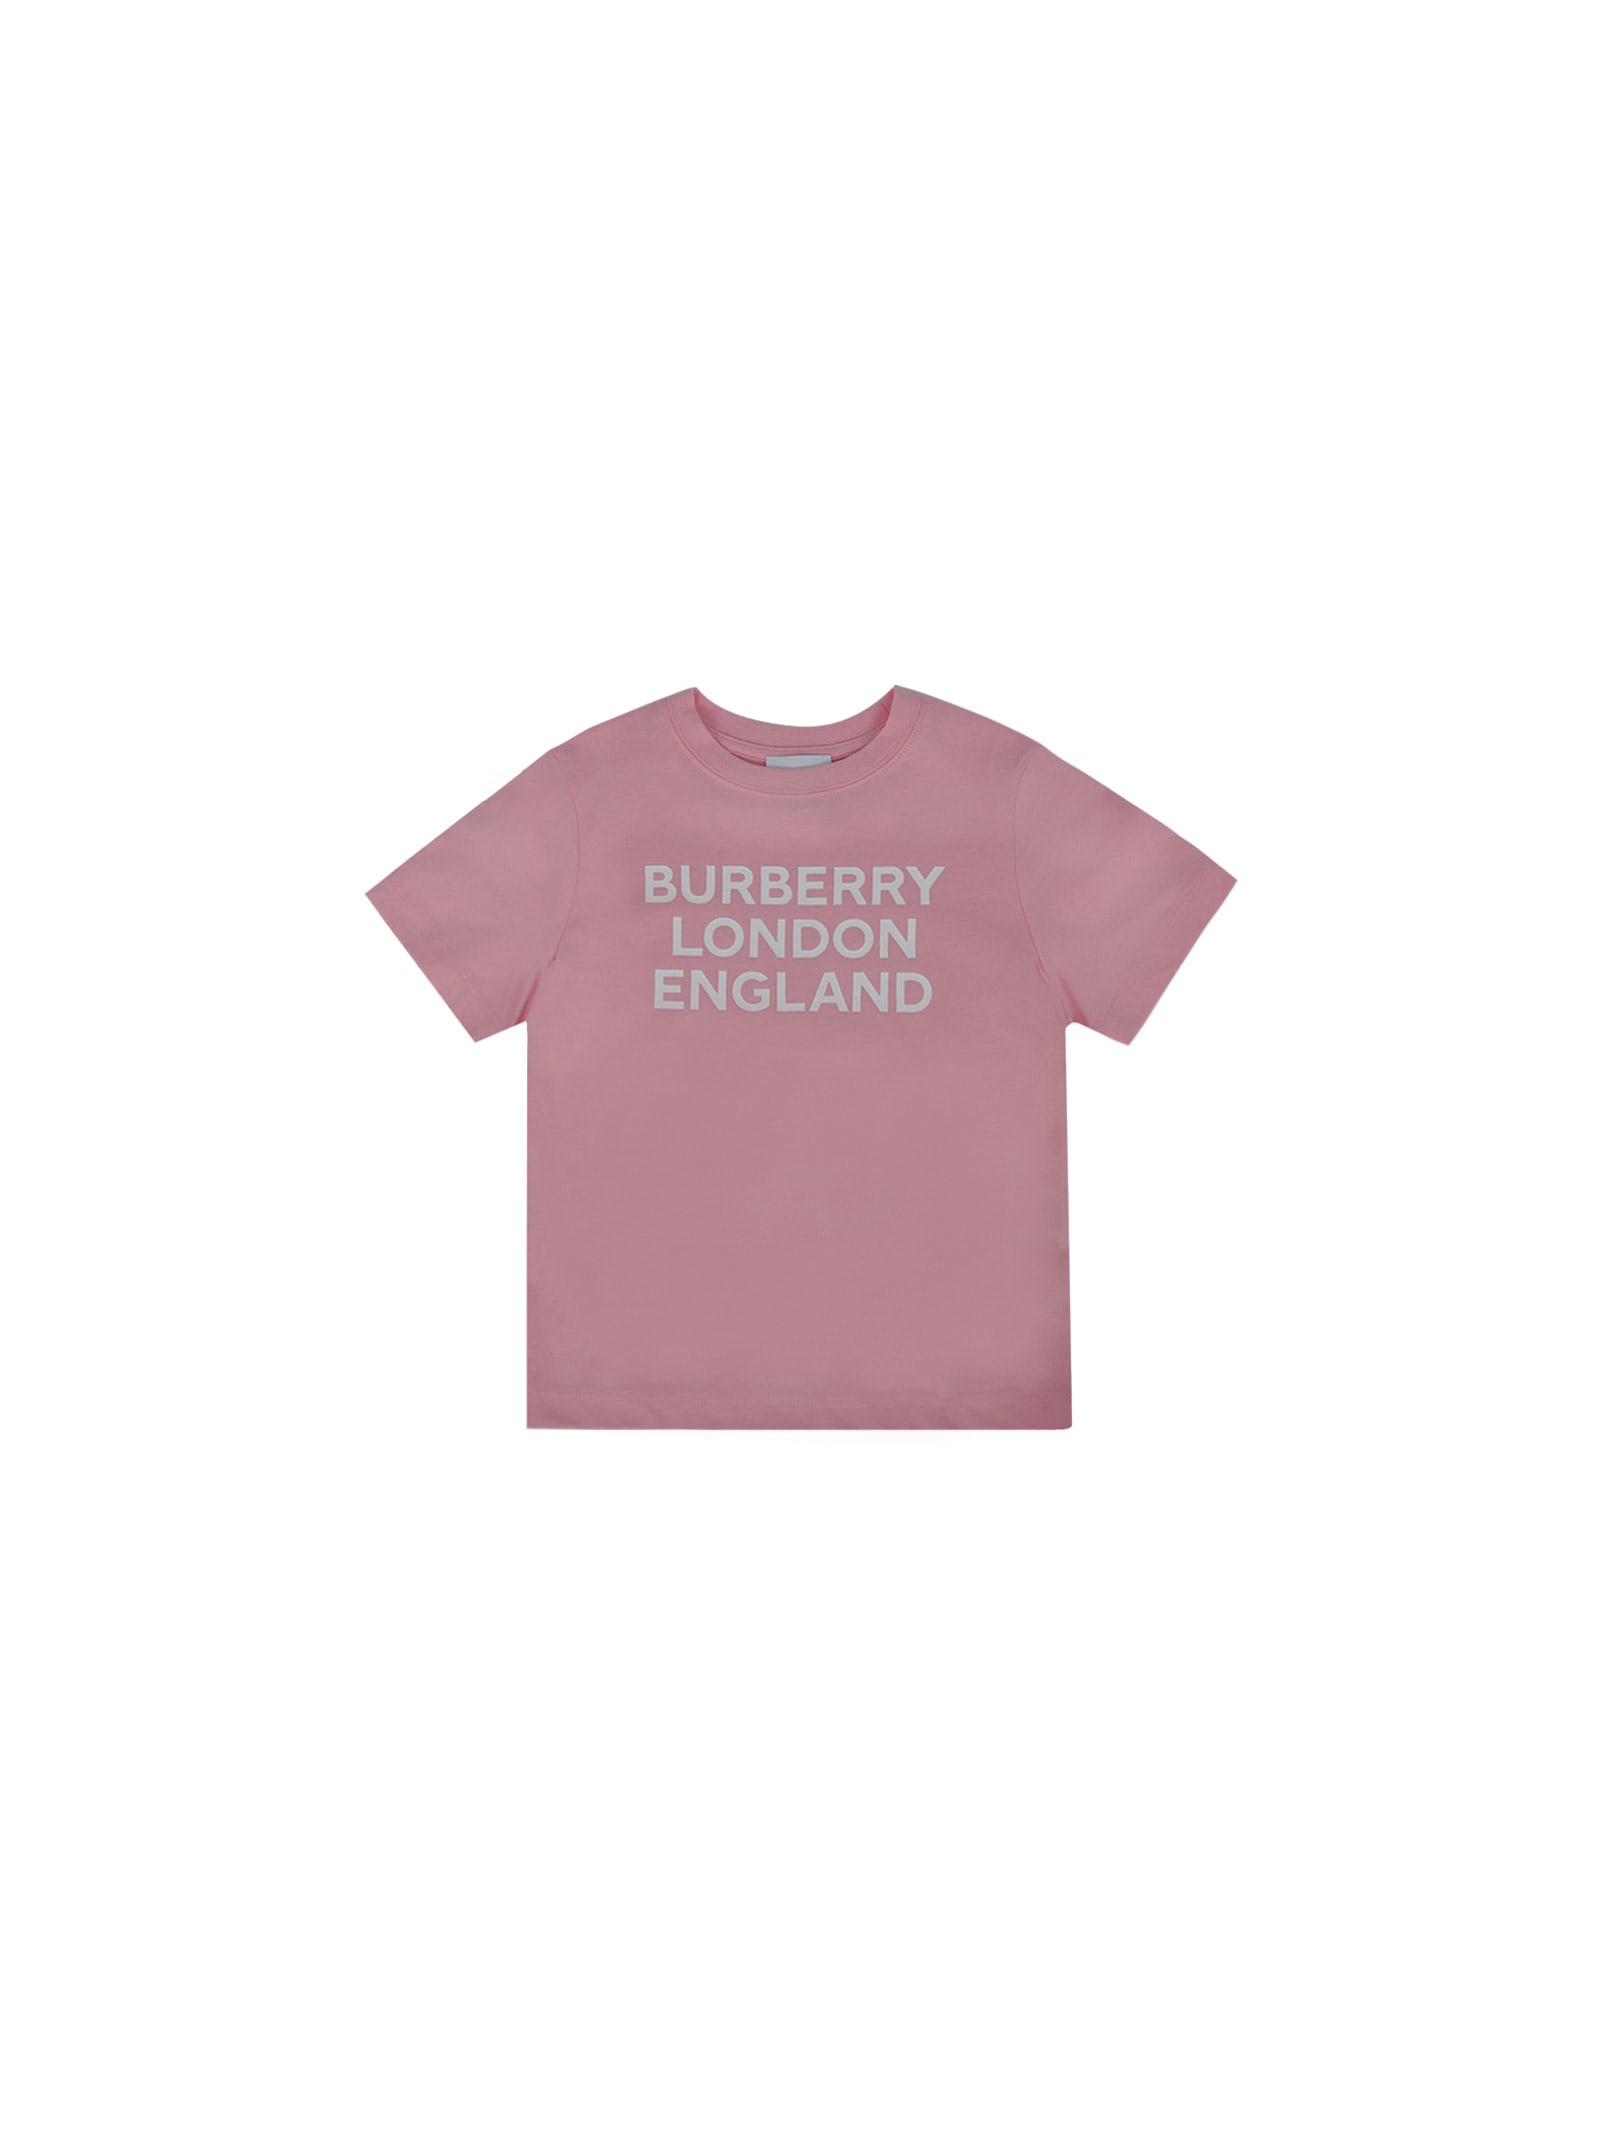 Burberry Kids' T-shirt For Girl In Candy Pink